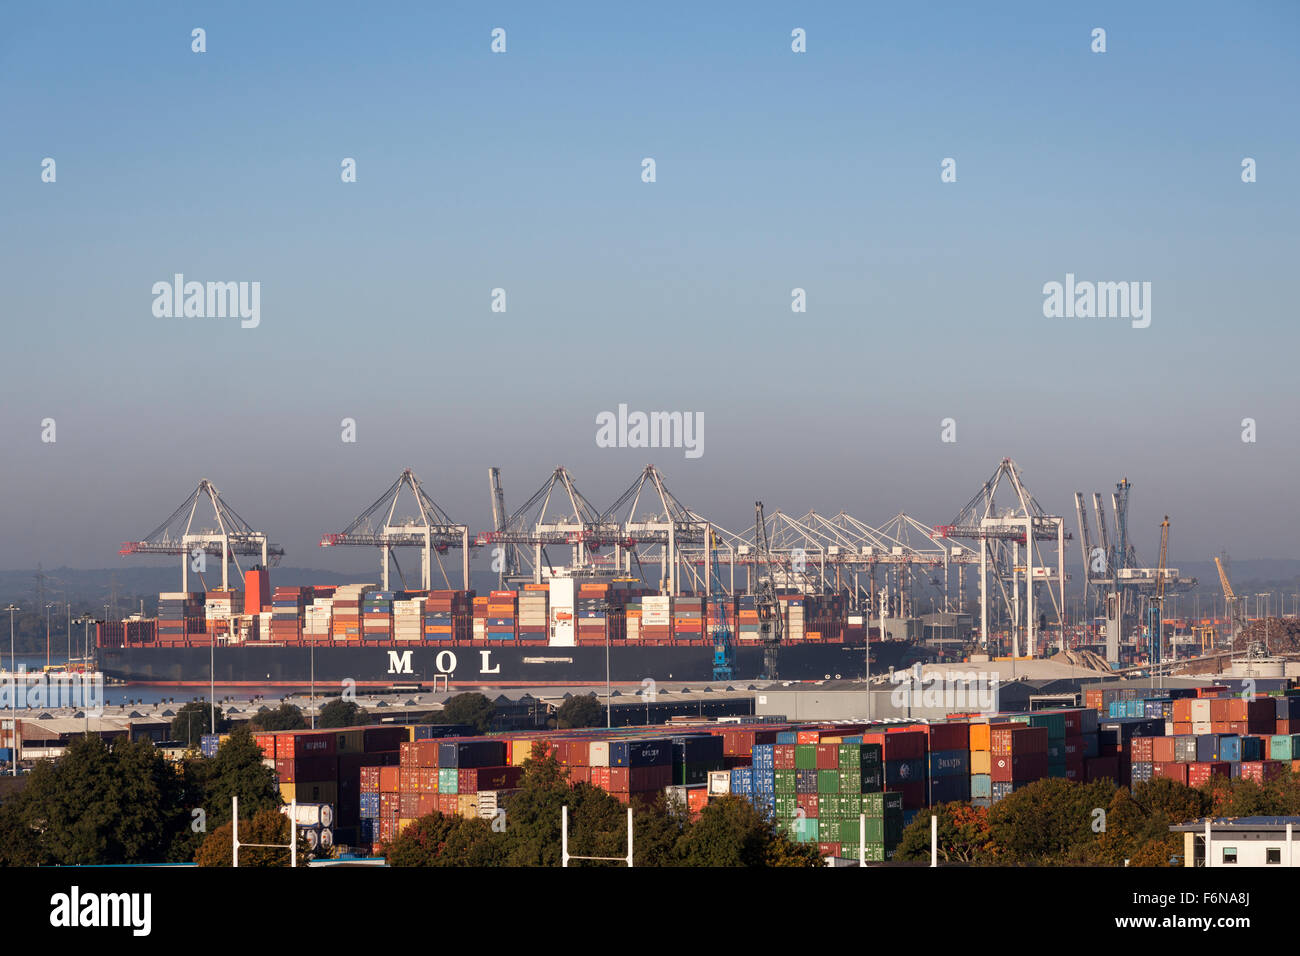 Mol Quartz container ship pictured in Southampton Container Port, DP World, Southampton Docks - Stock Image